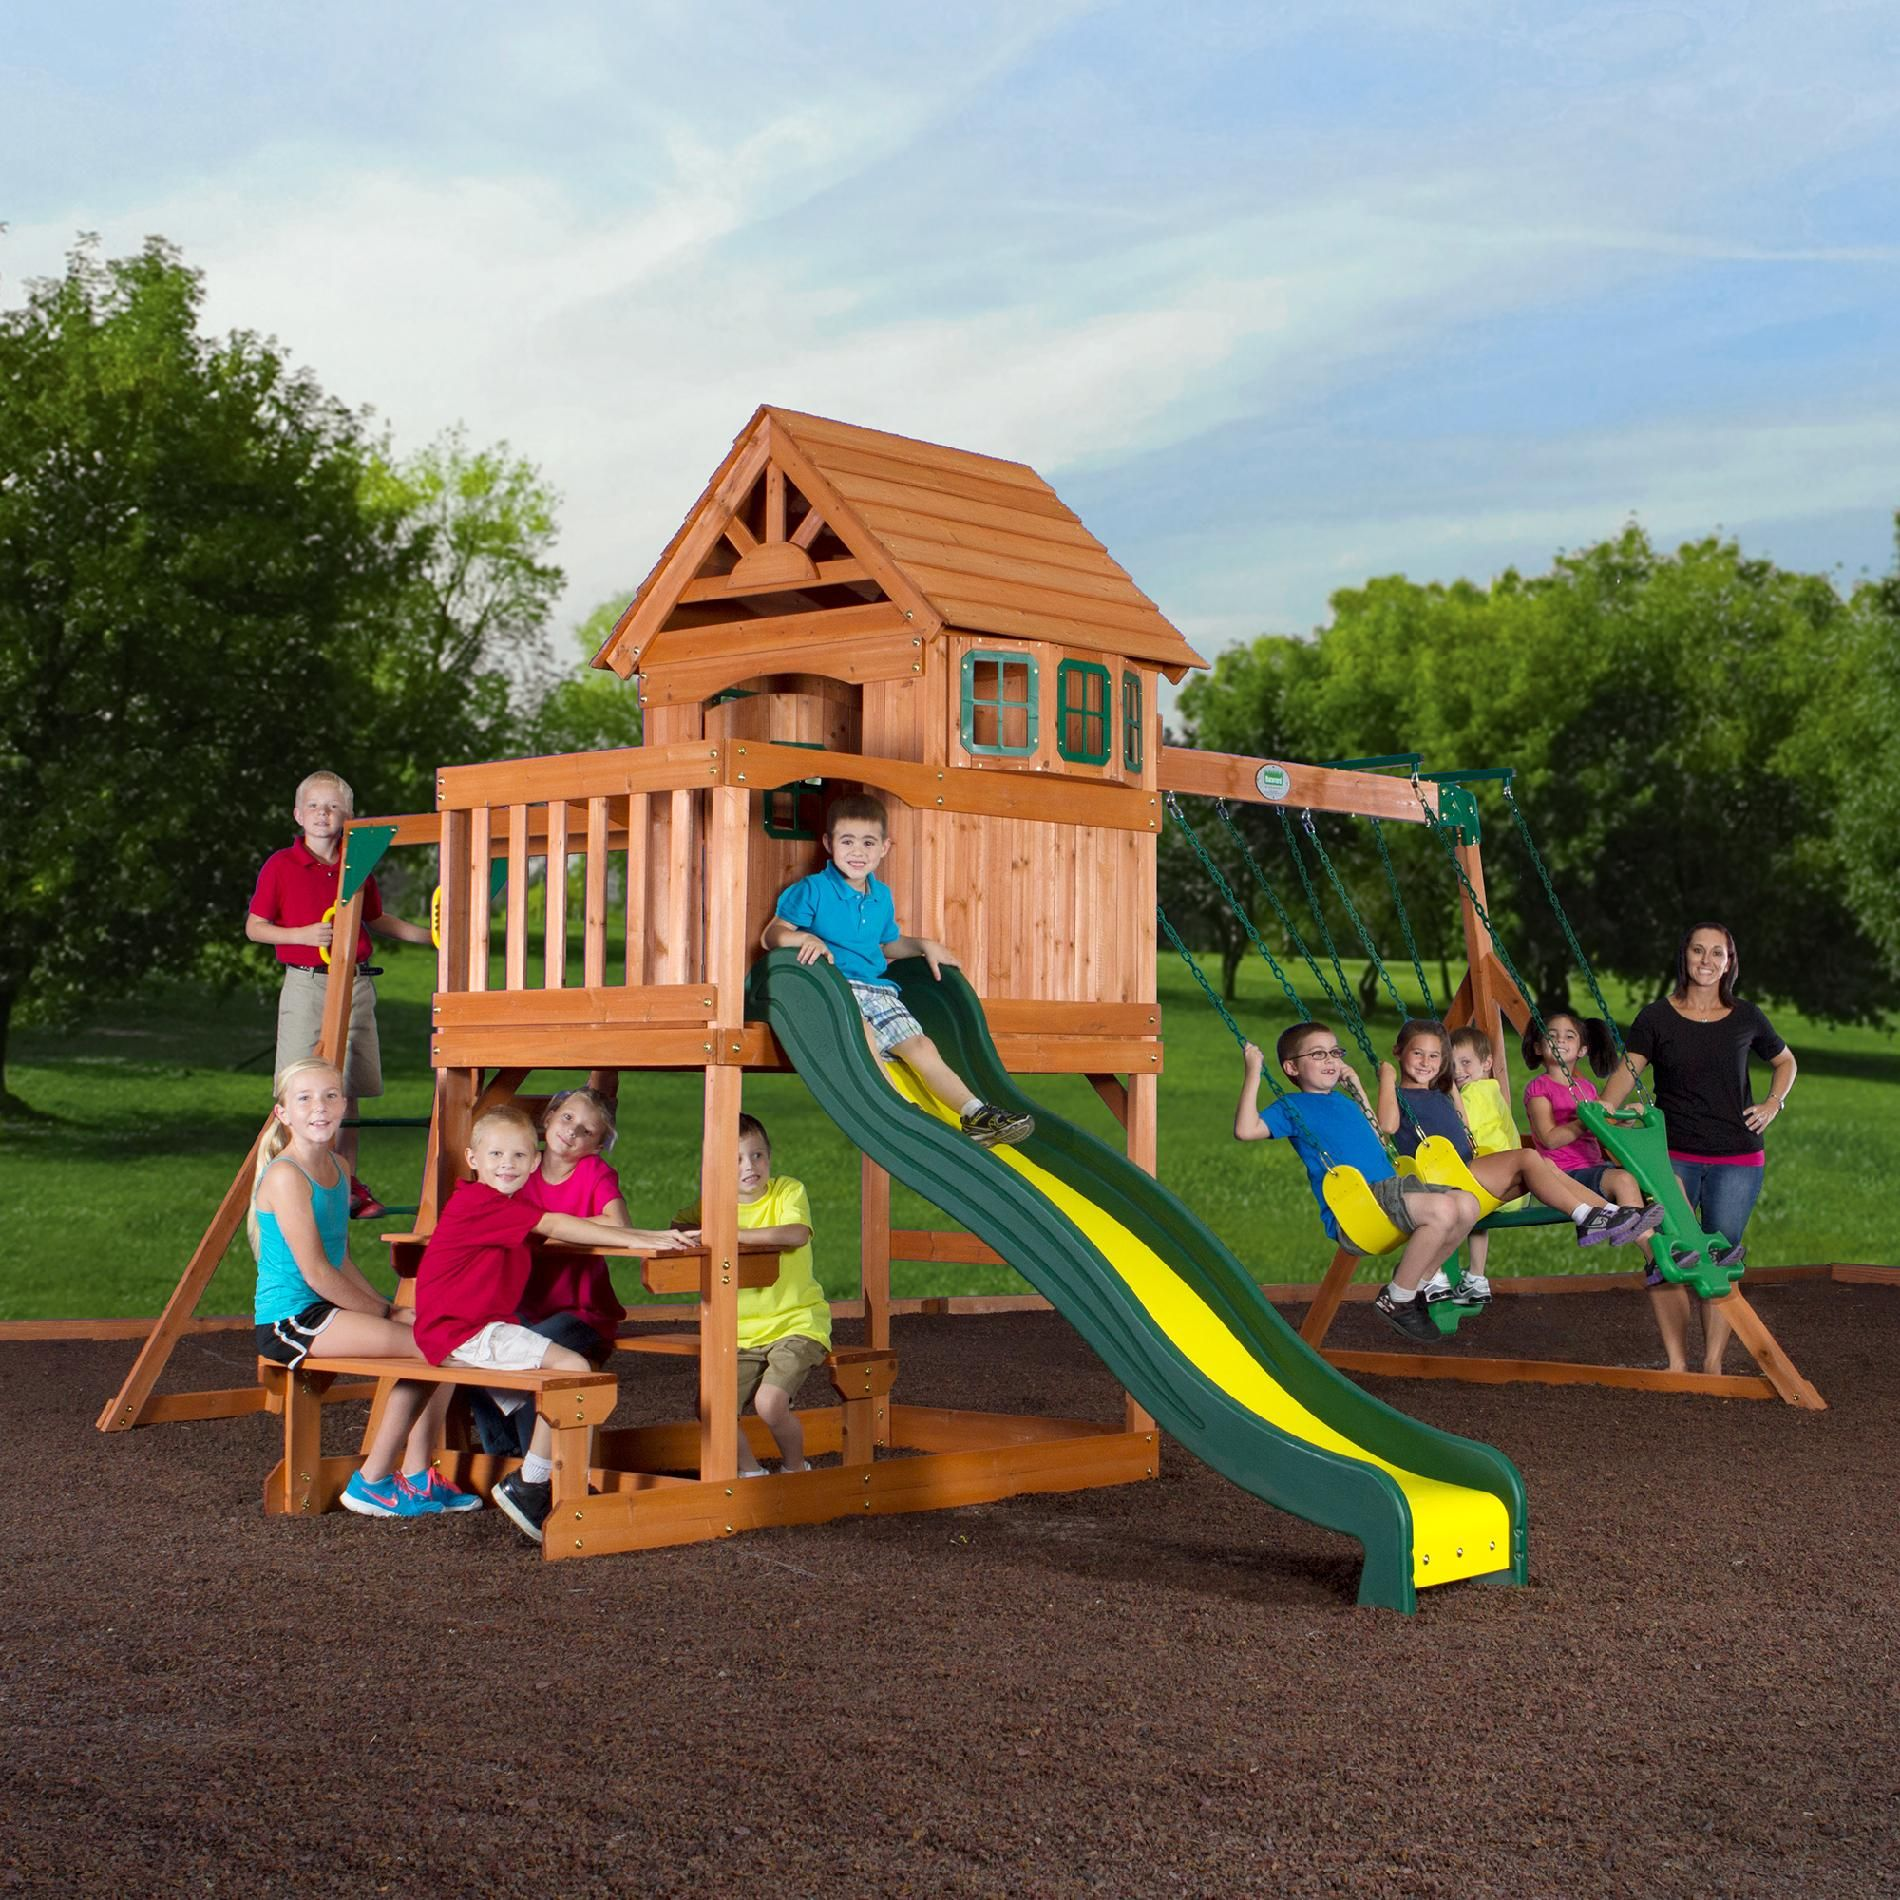 Wood Clubhouse Swing Set Get Your Kids Moving With Kmart Swing Set Backyard Toys Wooden Playset